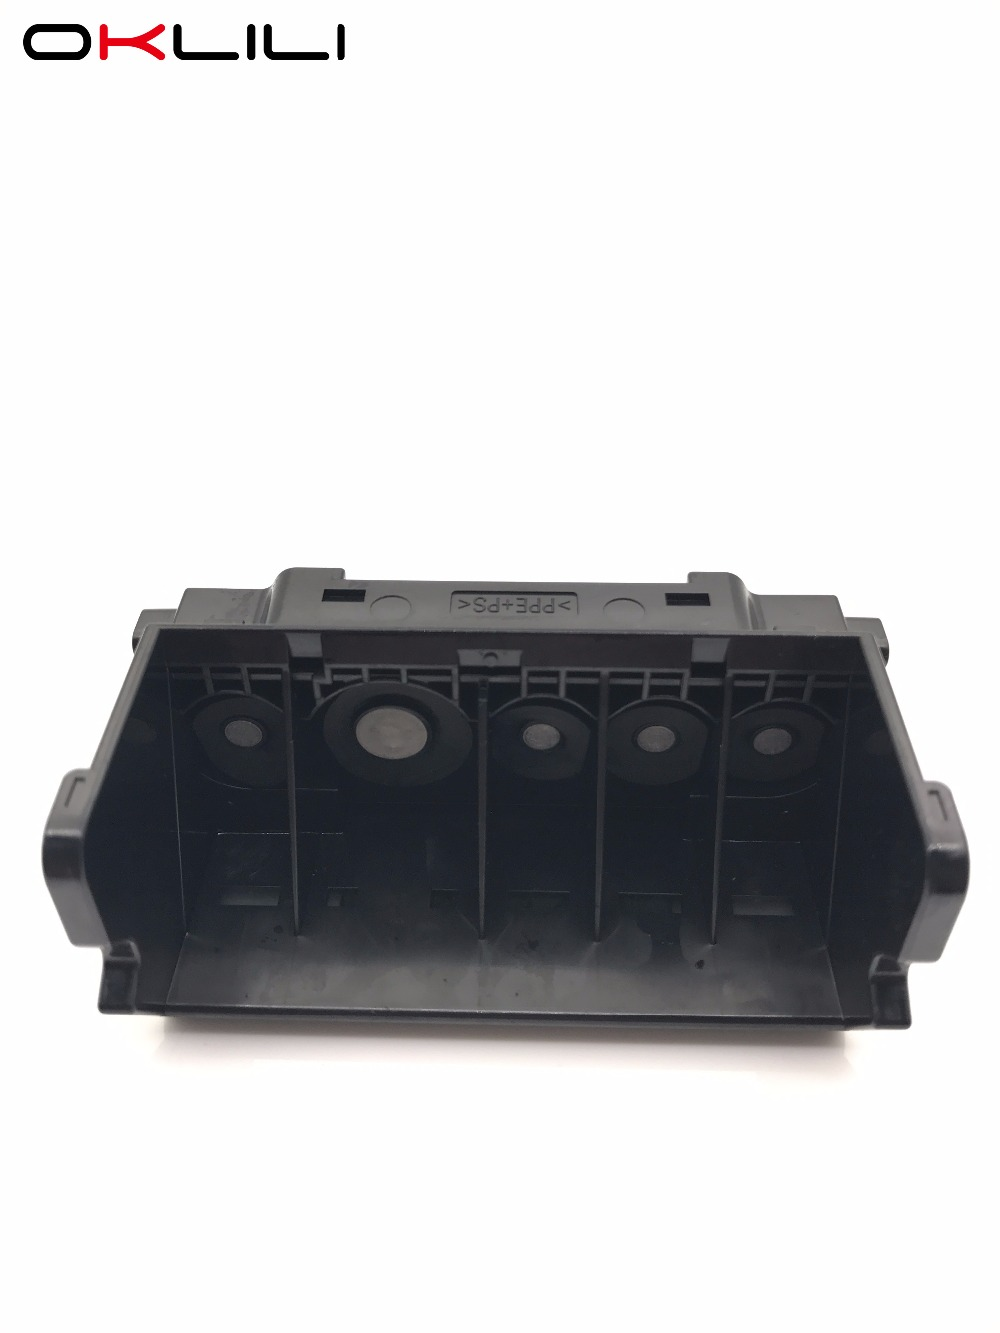 QY6-0073 Printhead Printhead untuk Canon iP3600 iP3680 MP540 MP560 MP568 MP620 MX860 MX868 MX870 MX878 MG5140 MG5180 MG5150 MP550